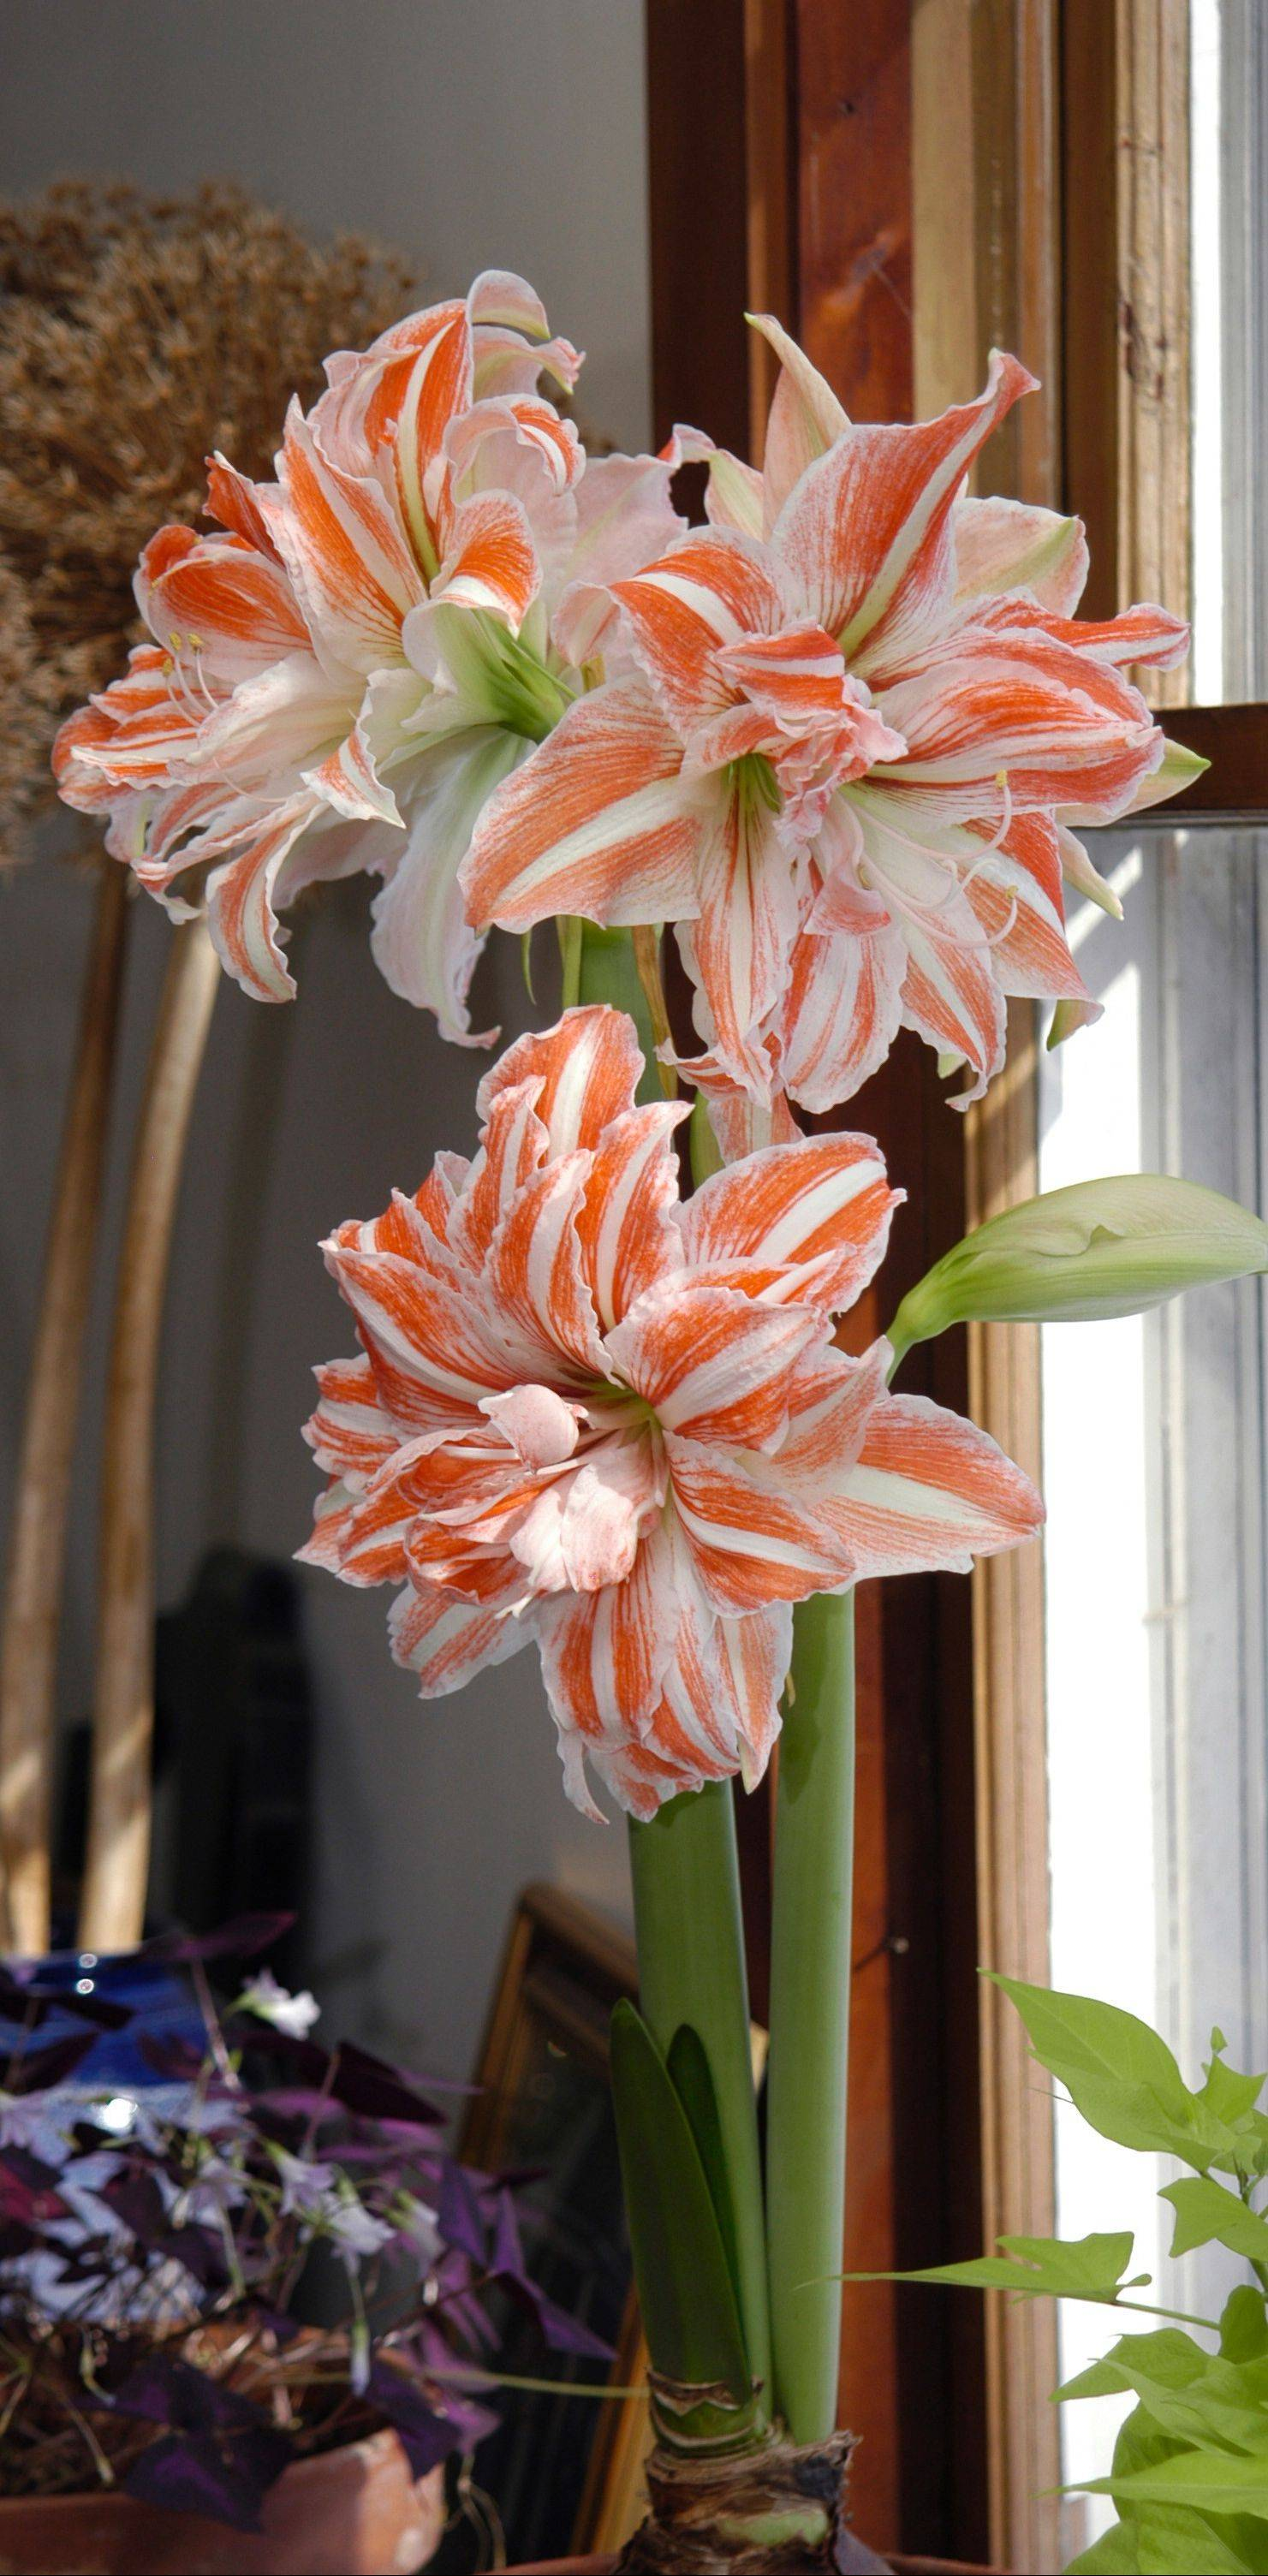 The double amaryllis Dancing Queen is bicolored.